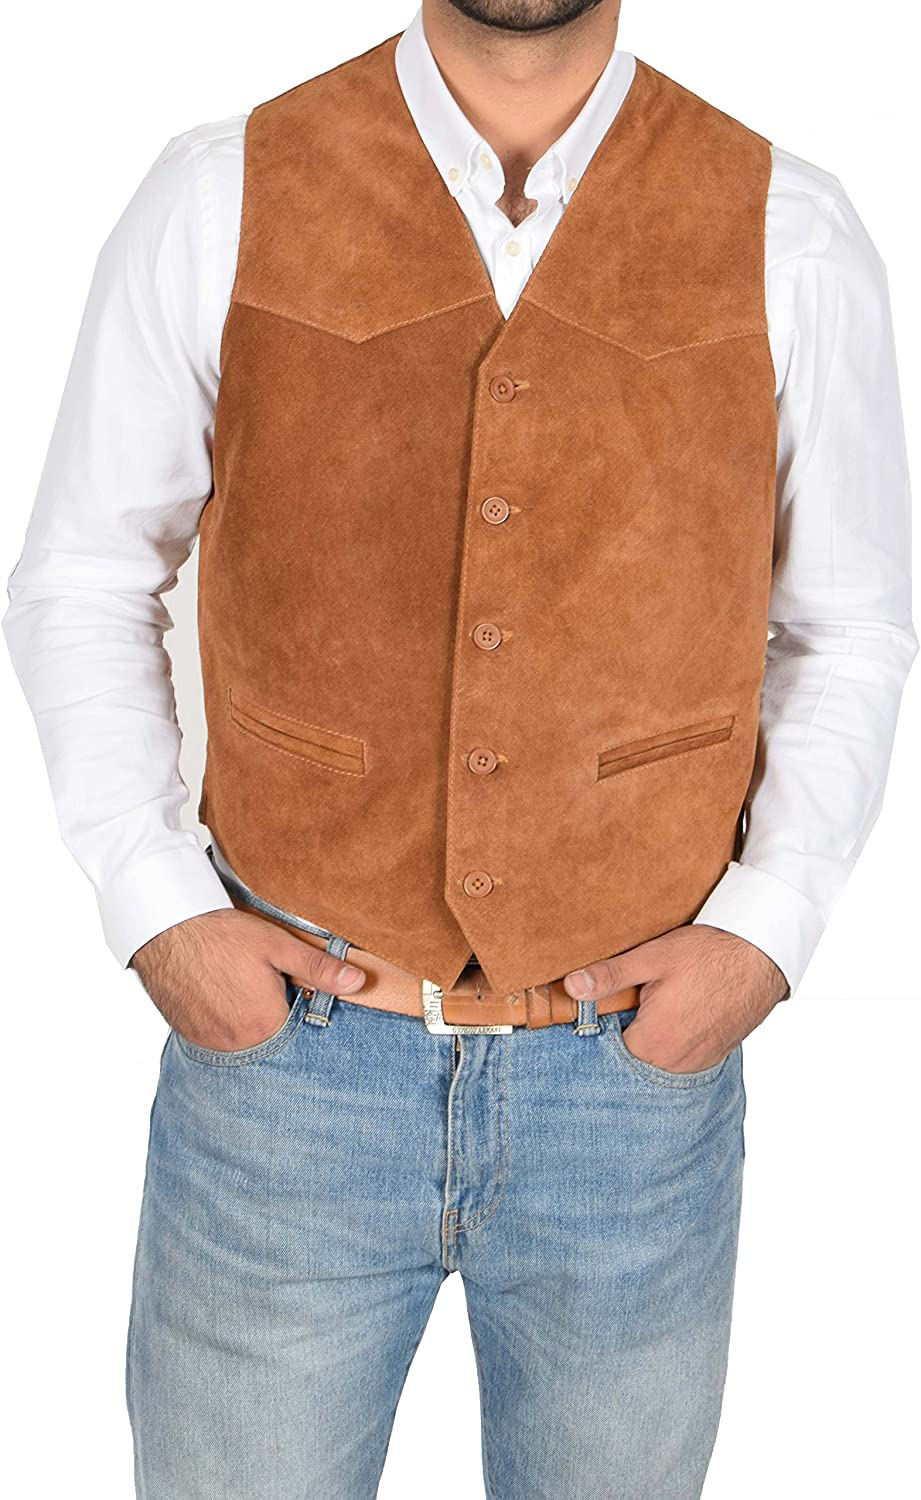 Mens REAL Suede Waistcoat Classic Style Soft TAN Suede Leather Vest Gilet - Cole